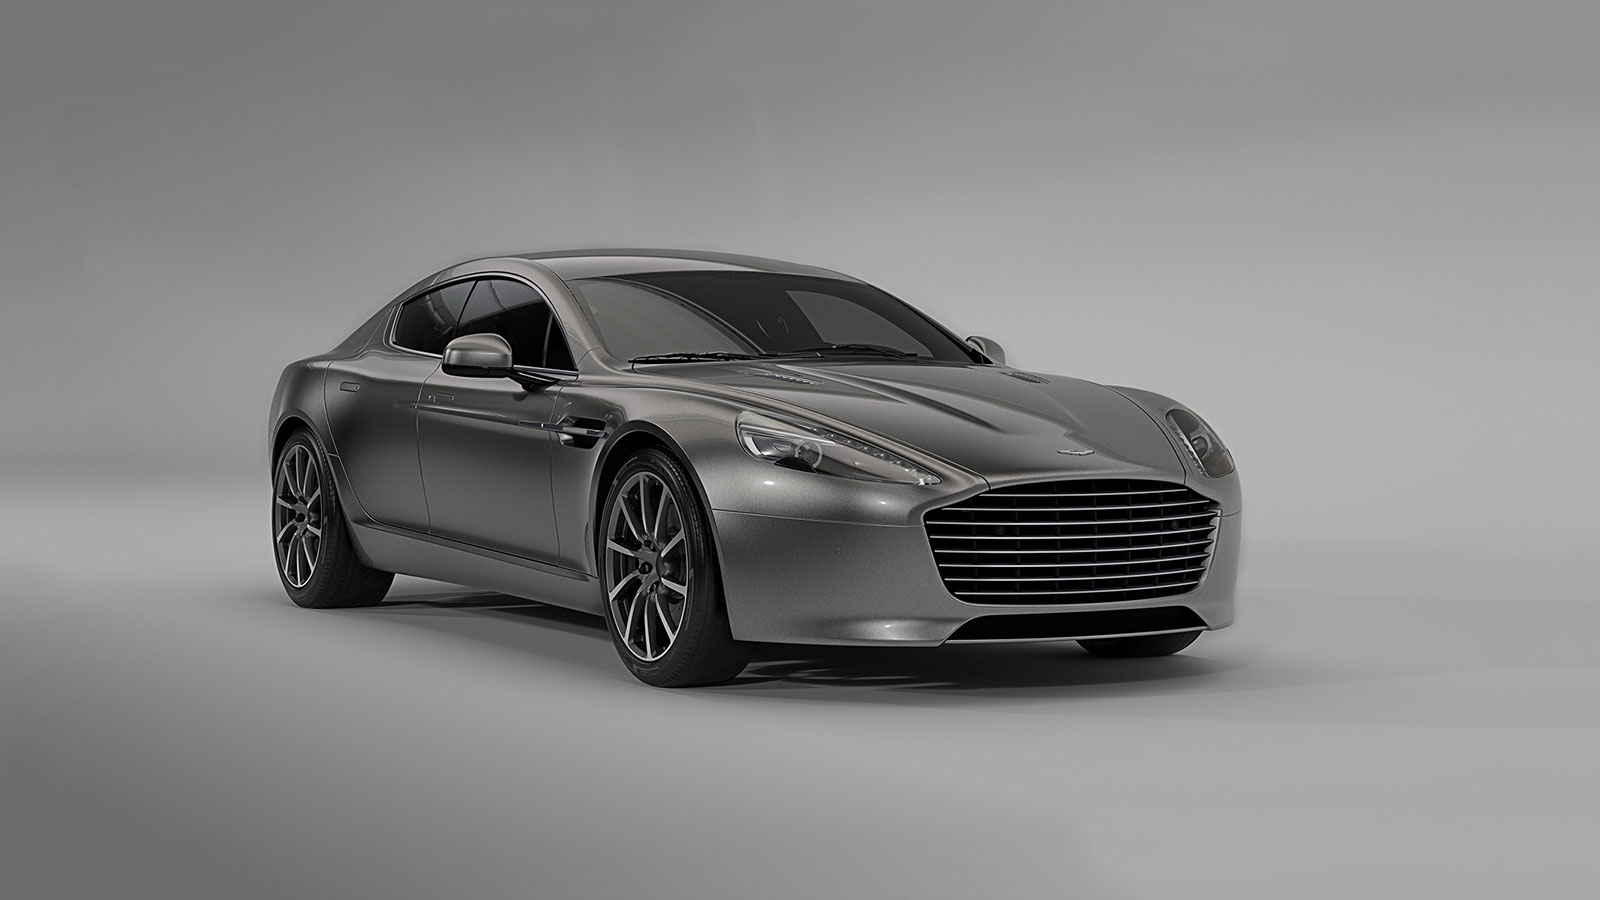 2019 Aston Martin RapidE All-Electric Supercar